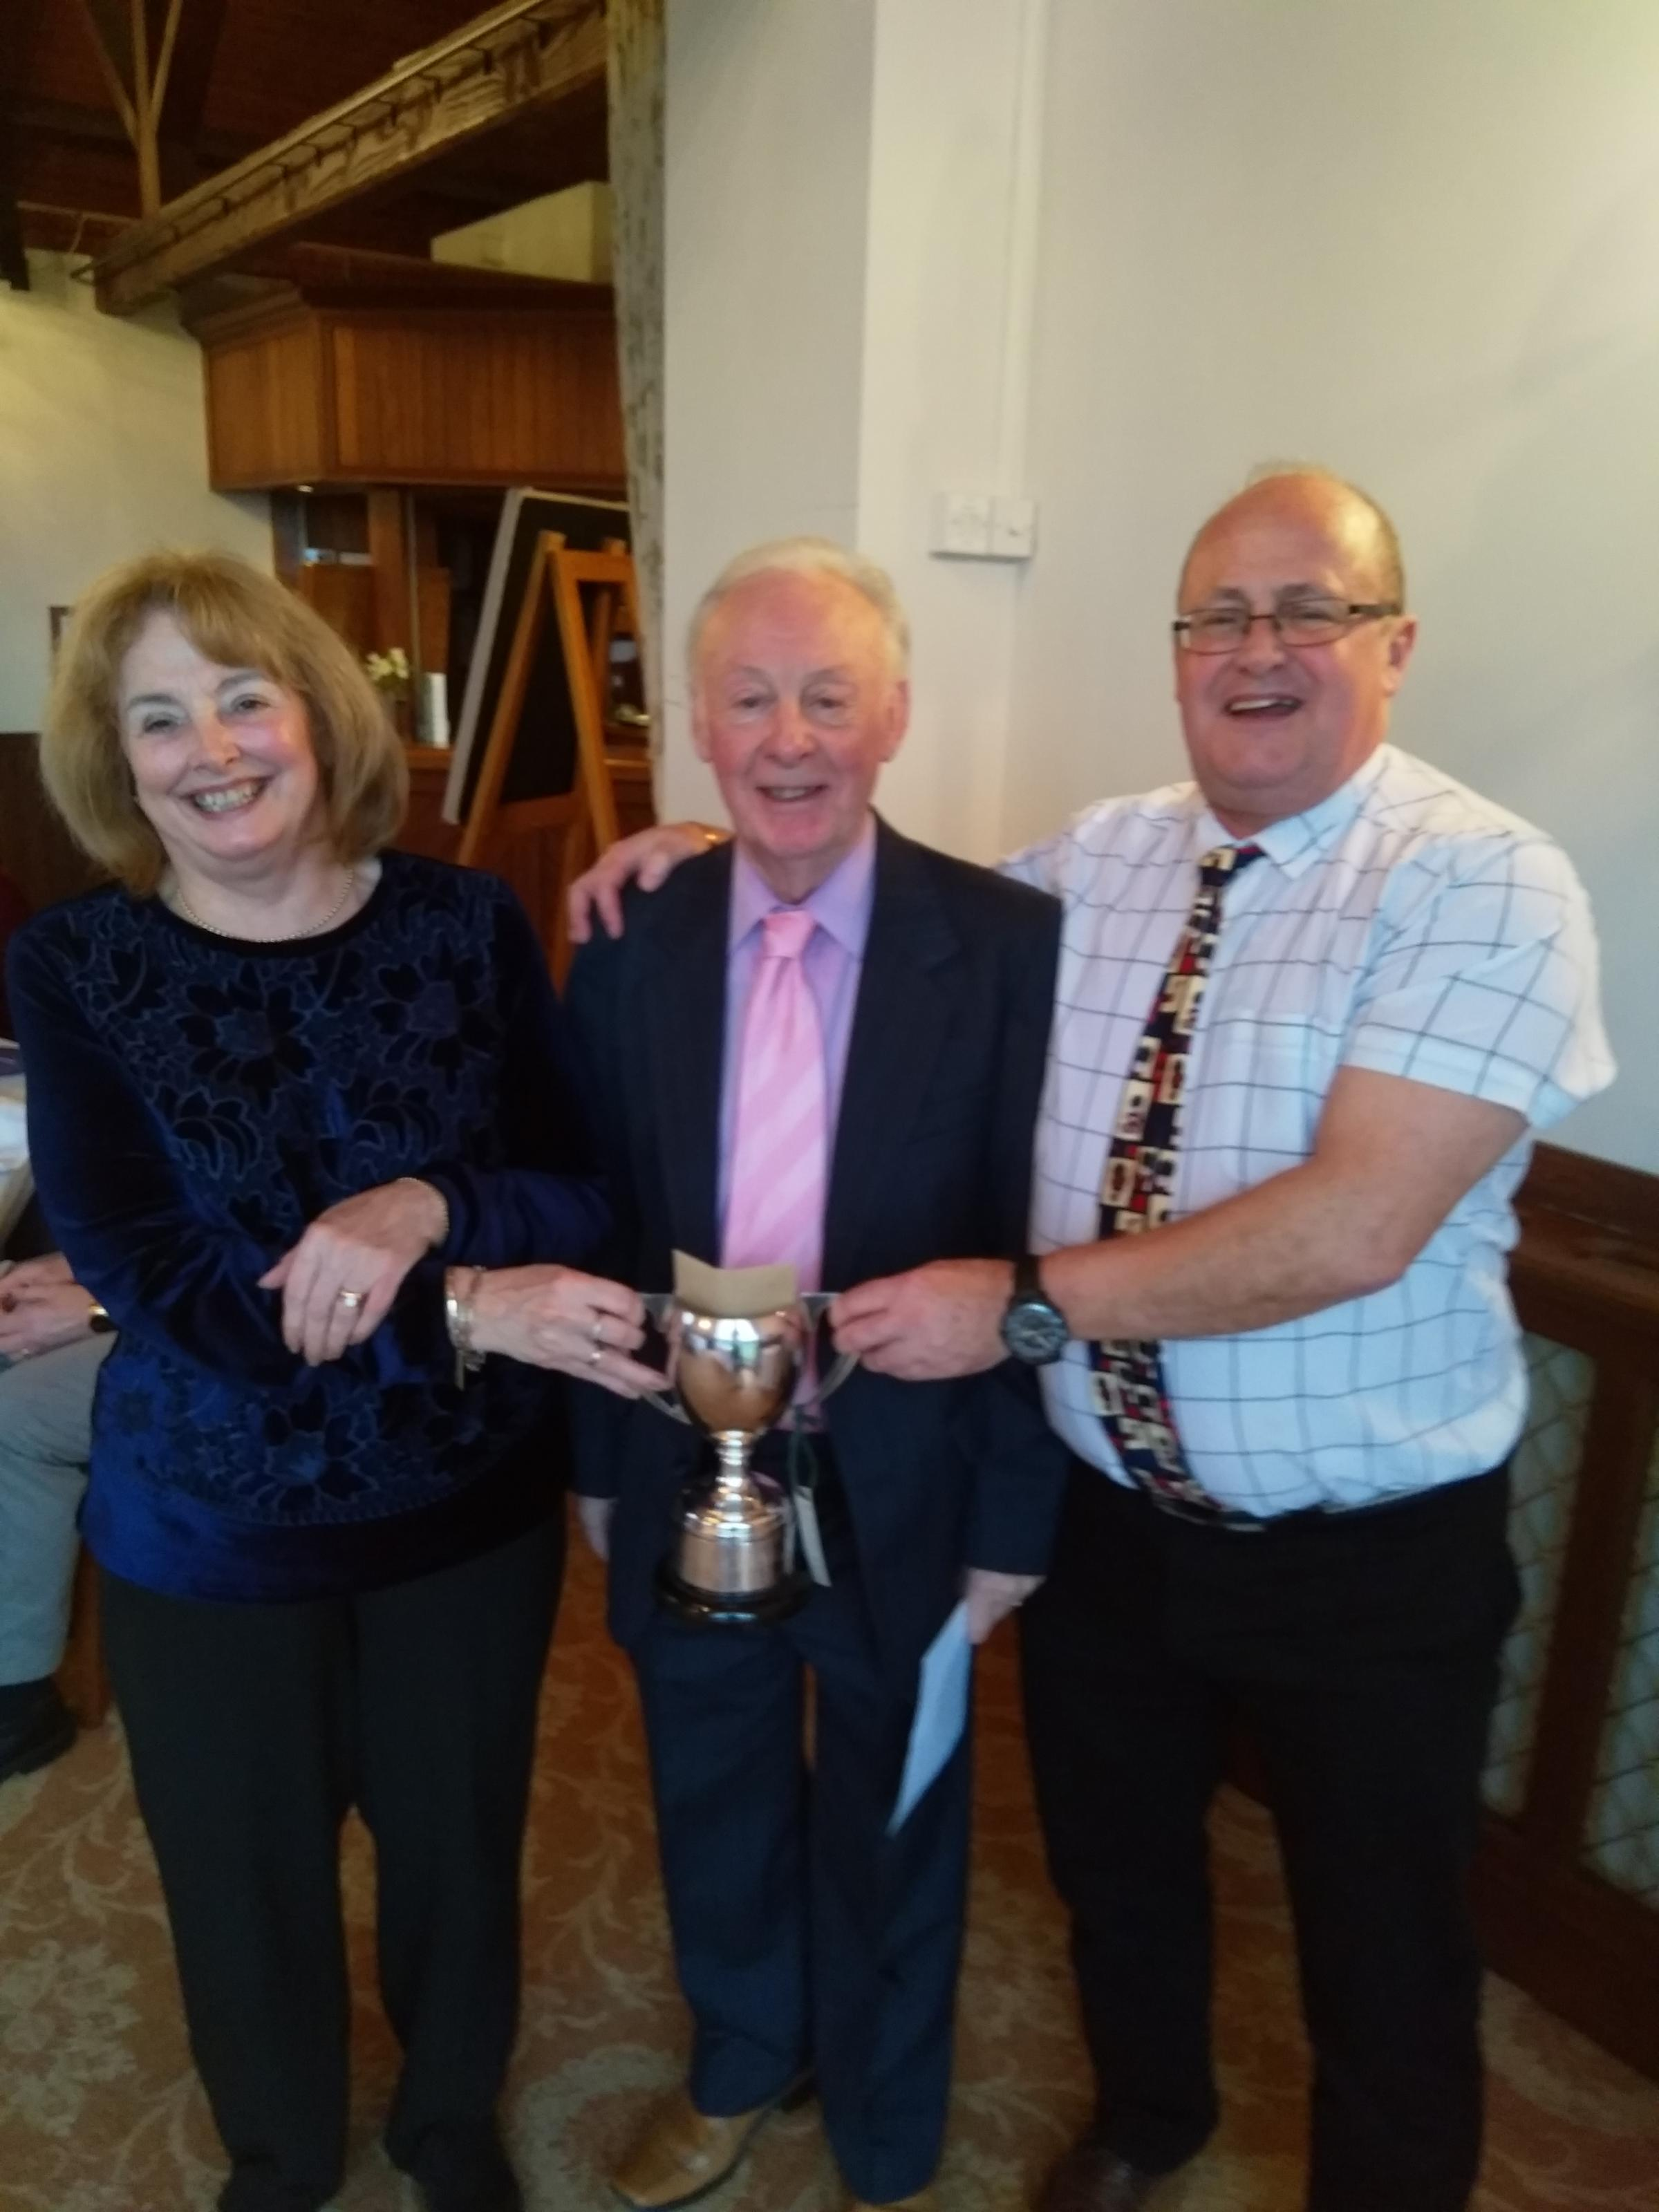 Sue Walters and Mark Blyth receive the mixed pairs competition trophy from Bradford on Avon Bowls Club president Michael Holbrow (centre)